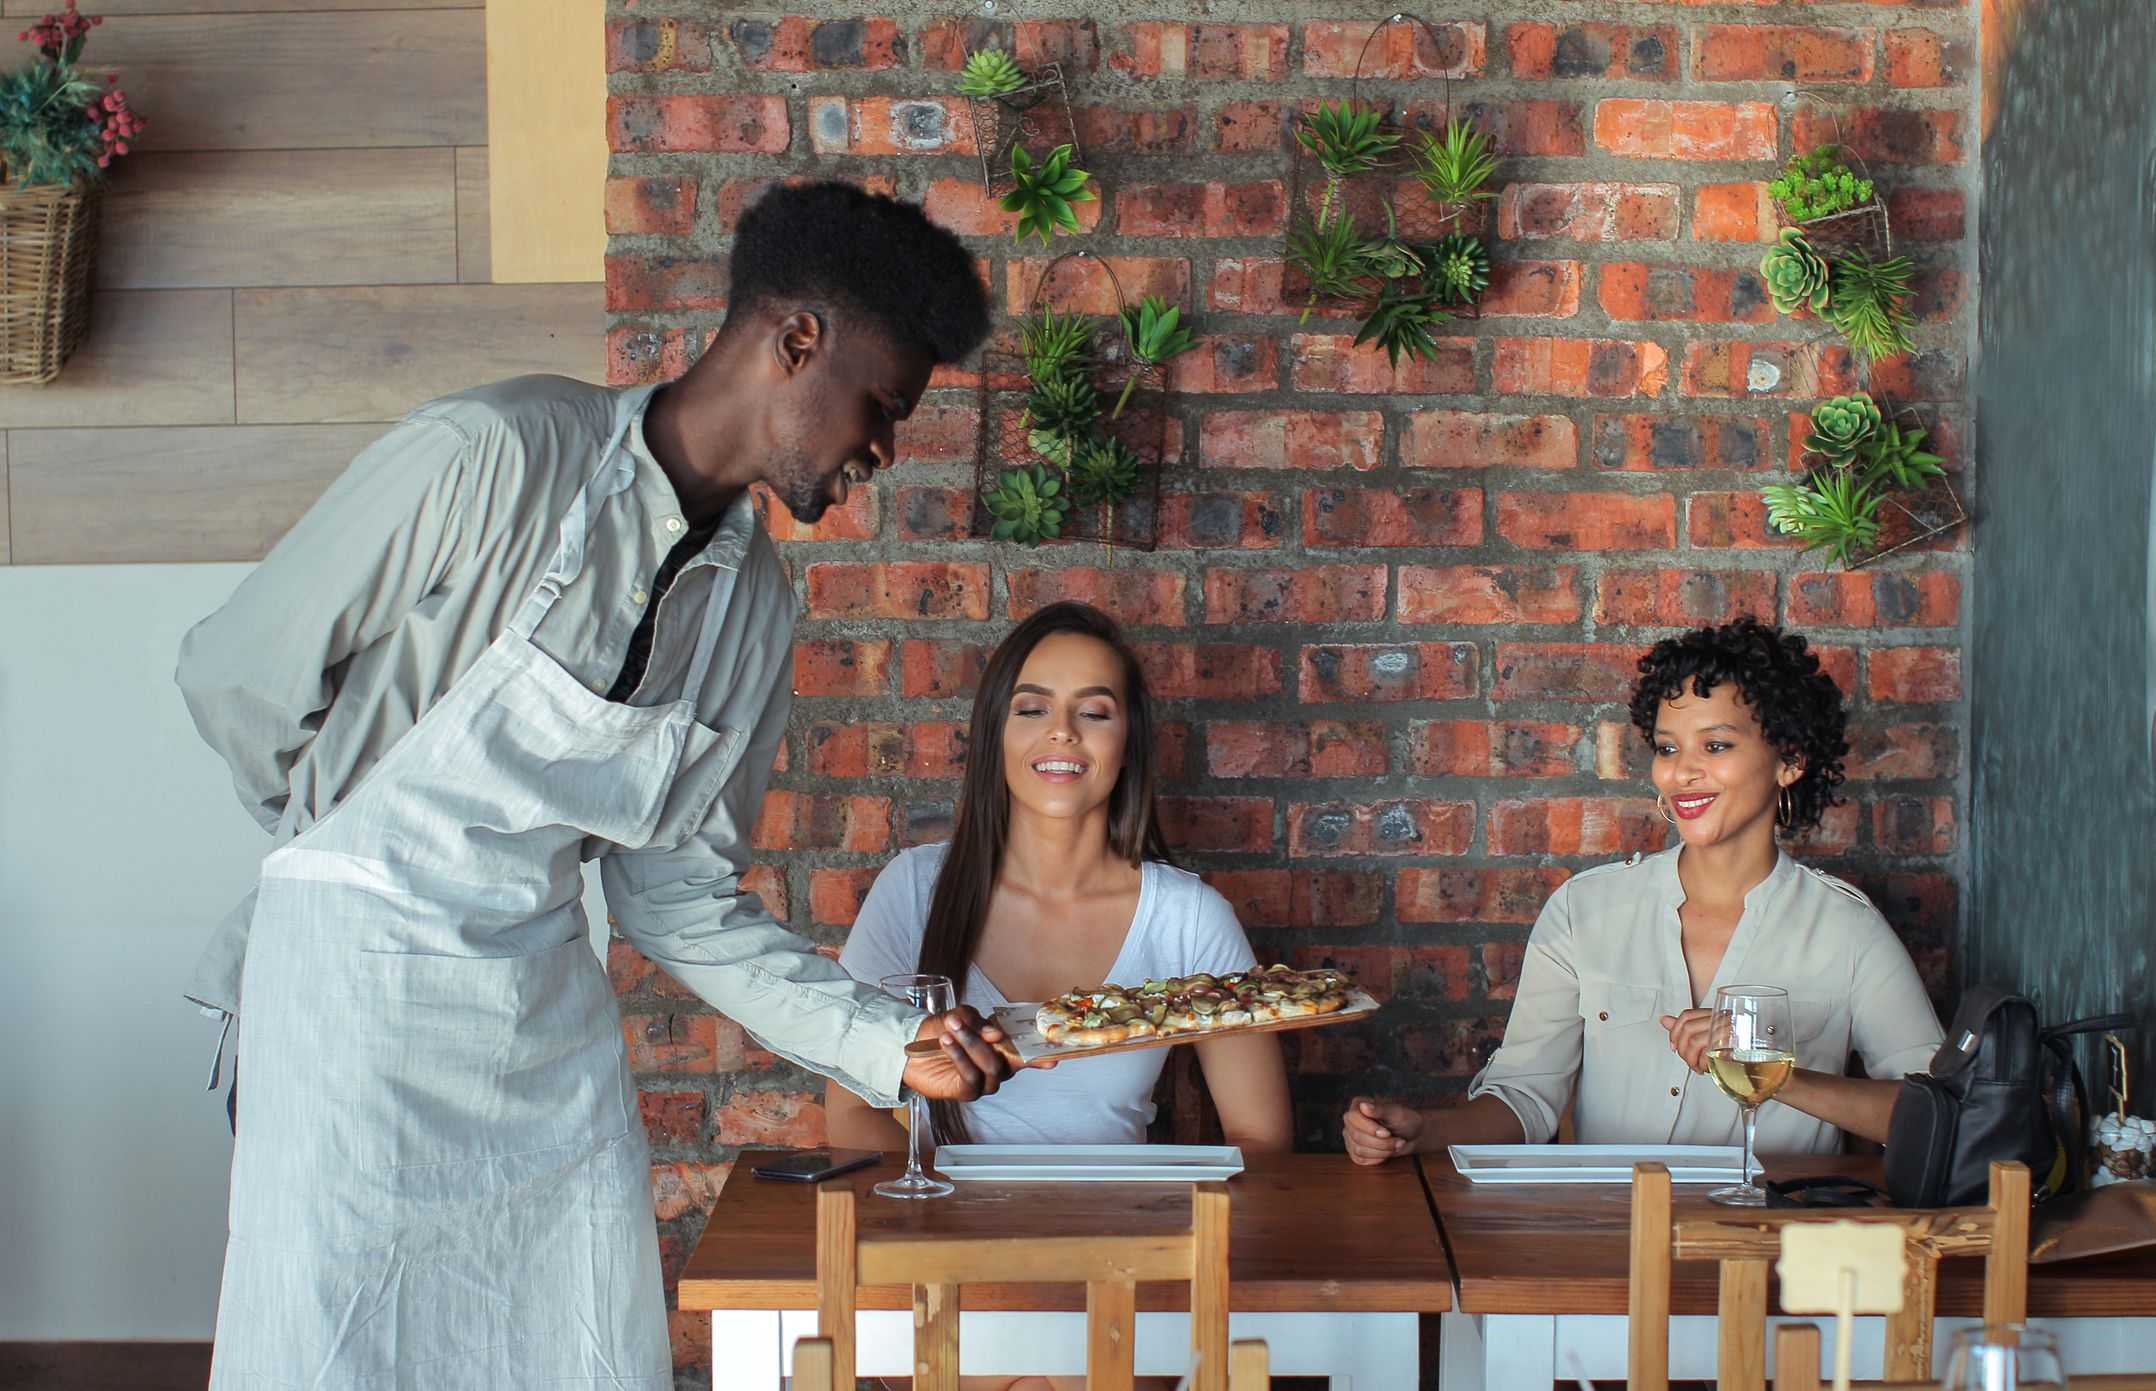 How You Can Get A Job As A Waiter In A Restaurant